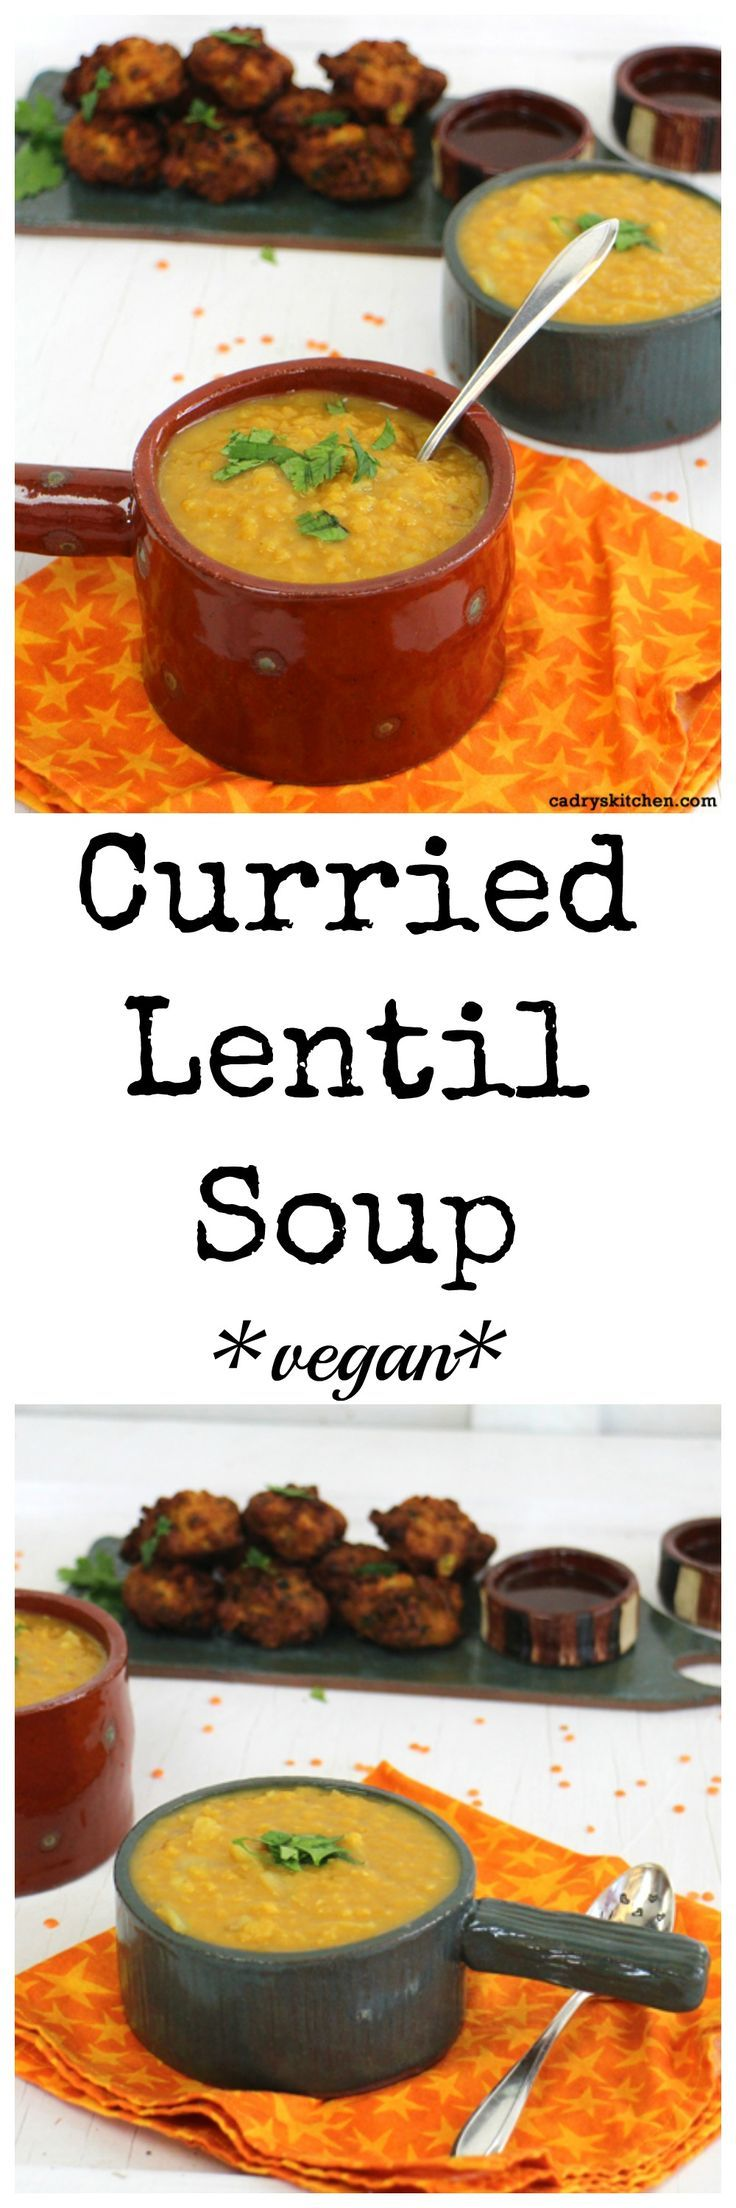 Best 20+ Curried lentil soup ideas on Pinterest